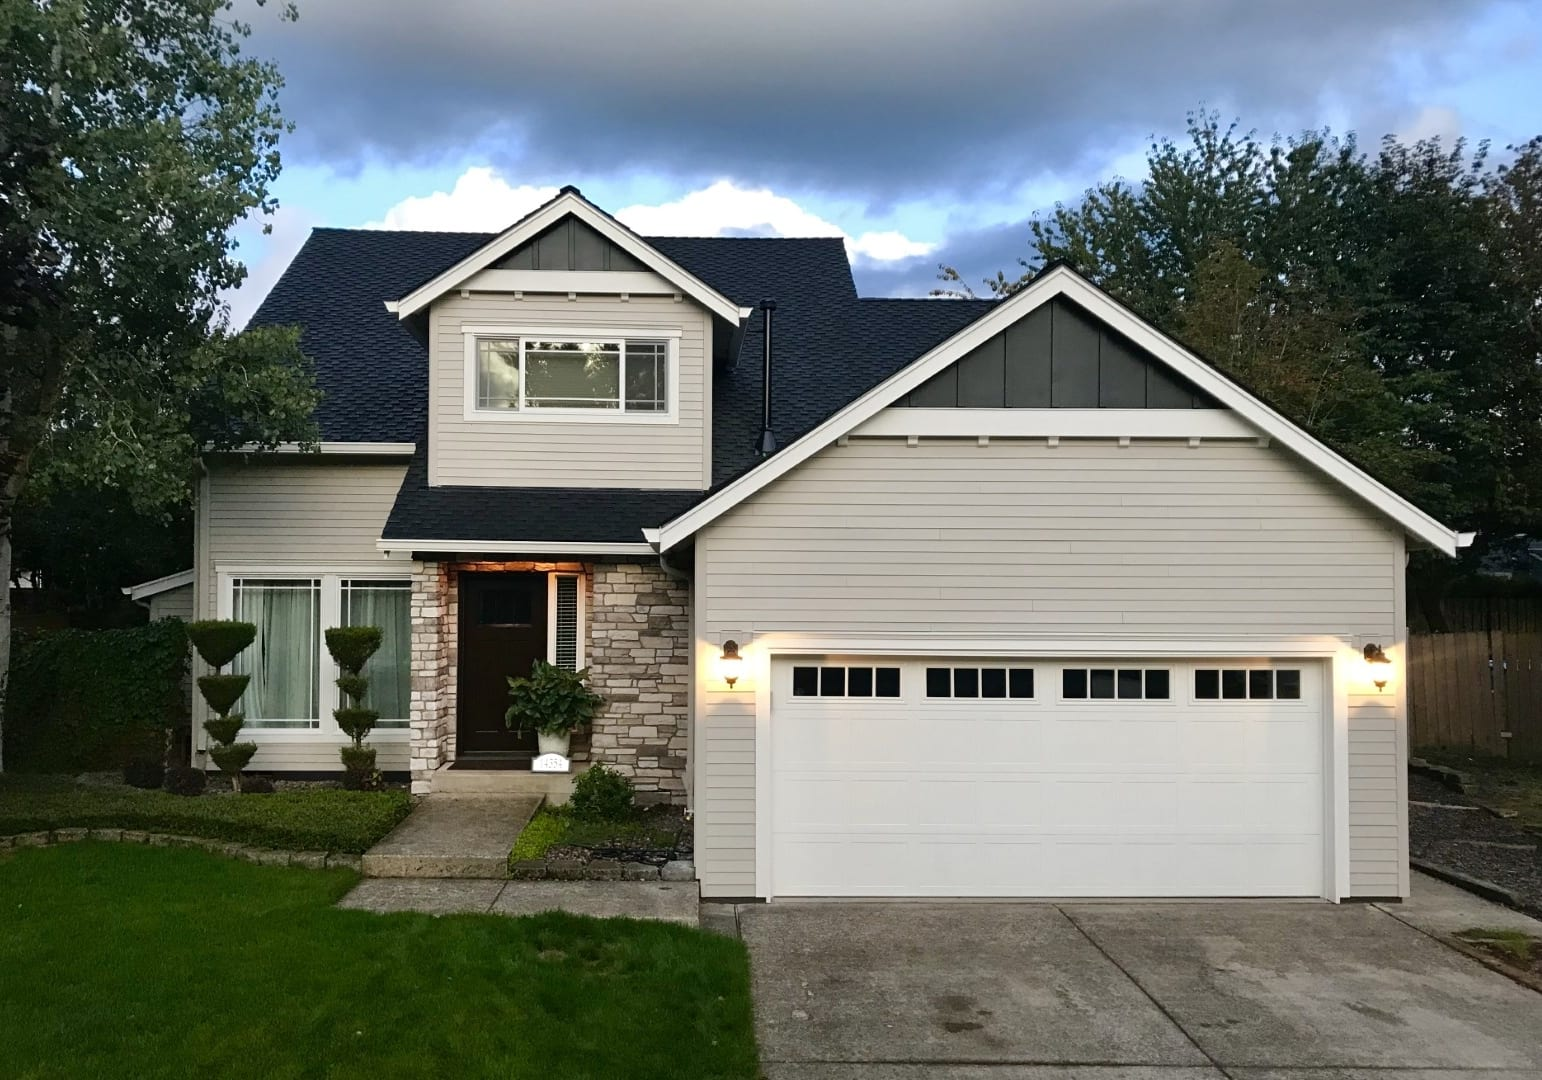 Siding project before and after in portland, after image